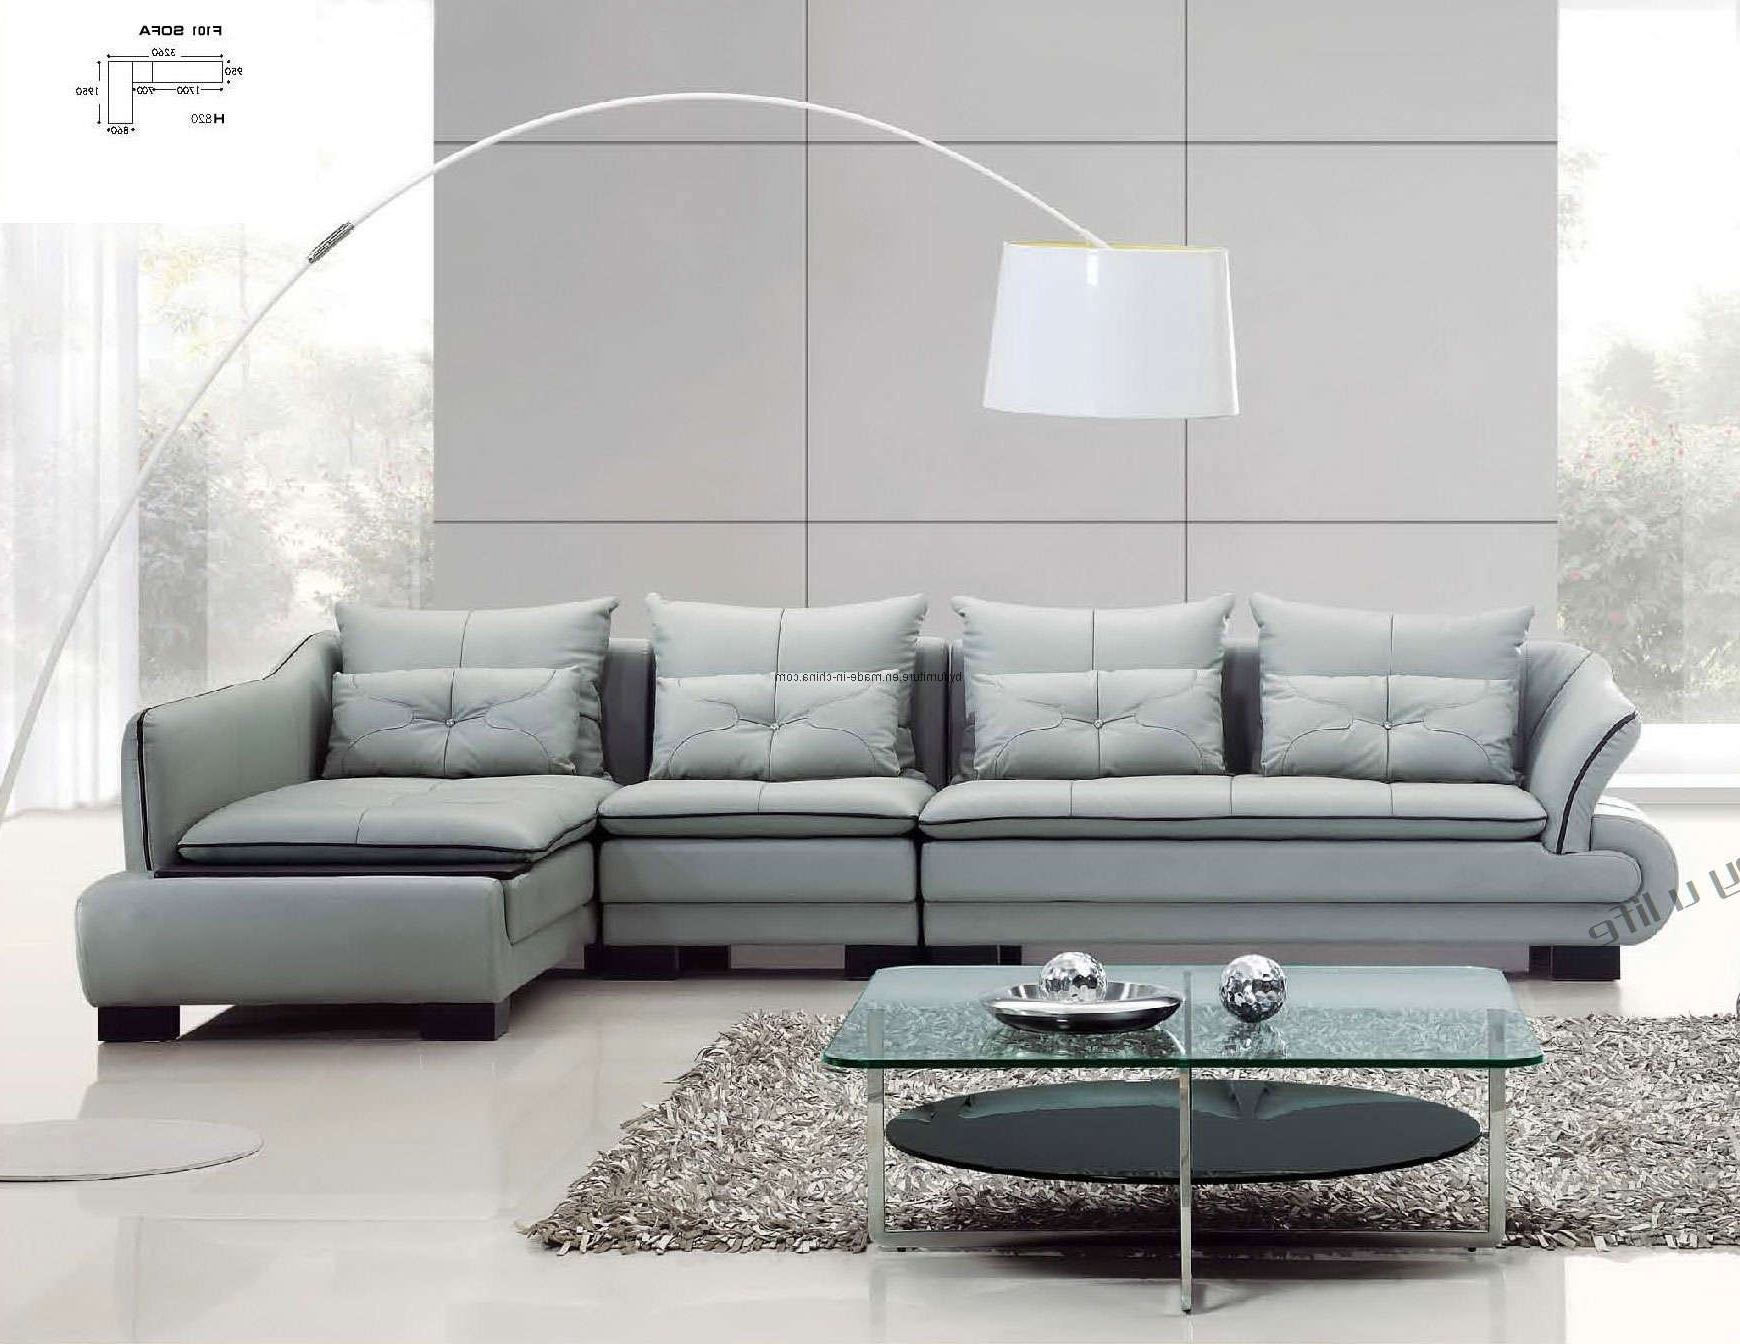 Contemporary Sofa Chairs For Best And Newest Sofa: Remarkable Contemporary Sofa Set Best Contemporary Sofas (View 3 of 15)